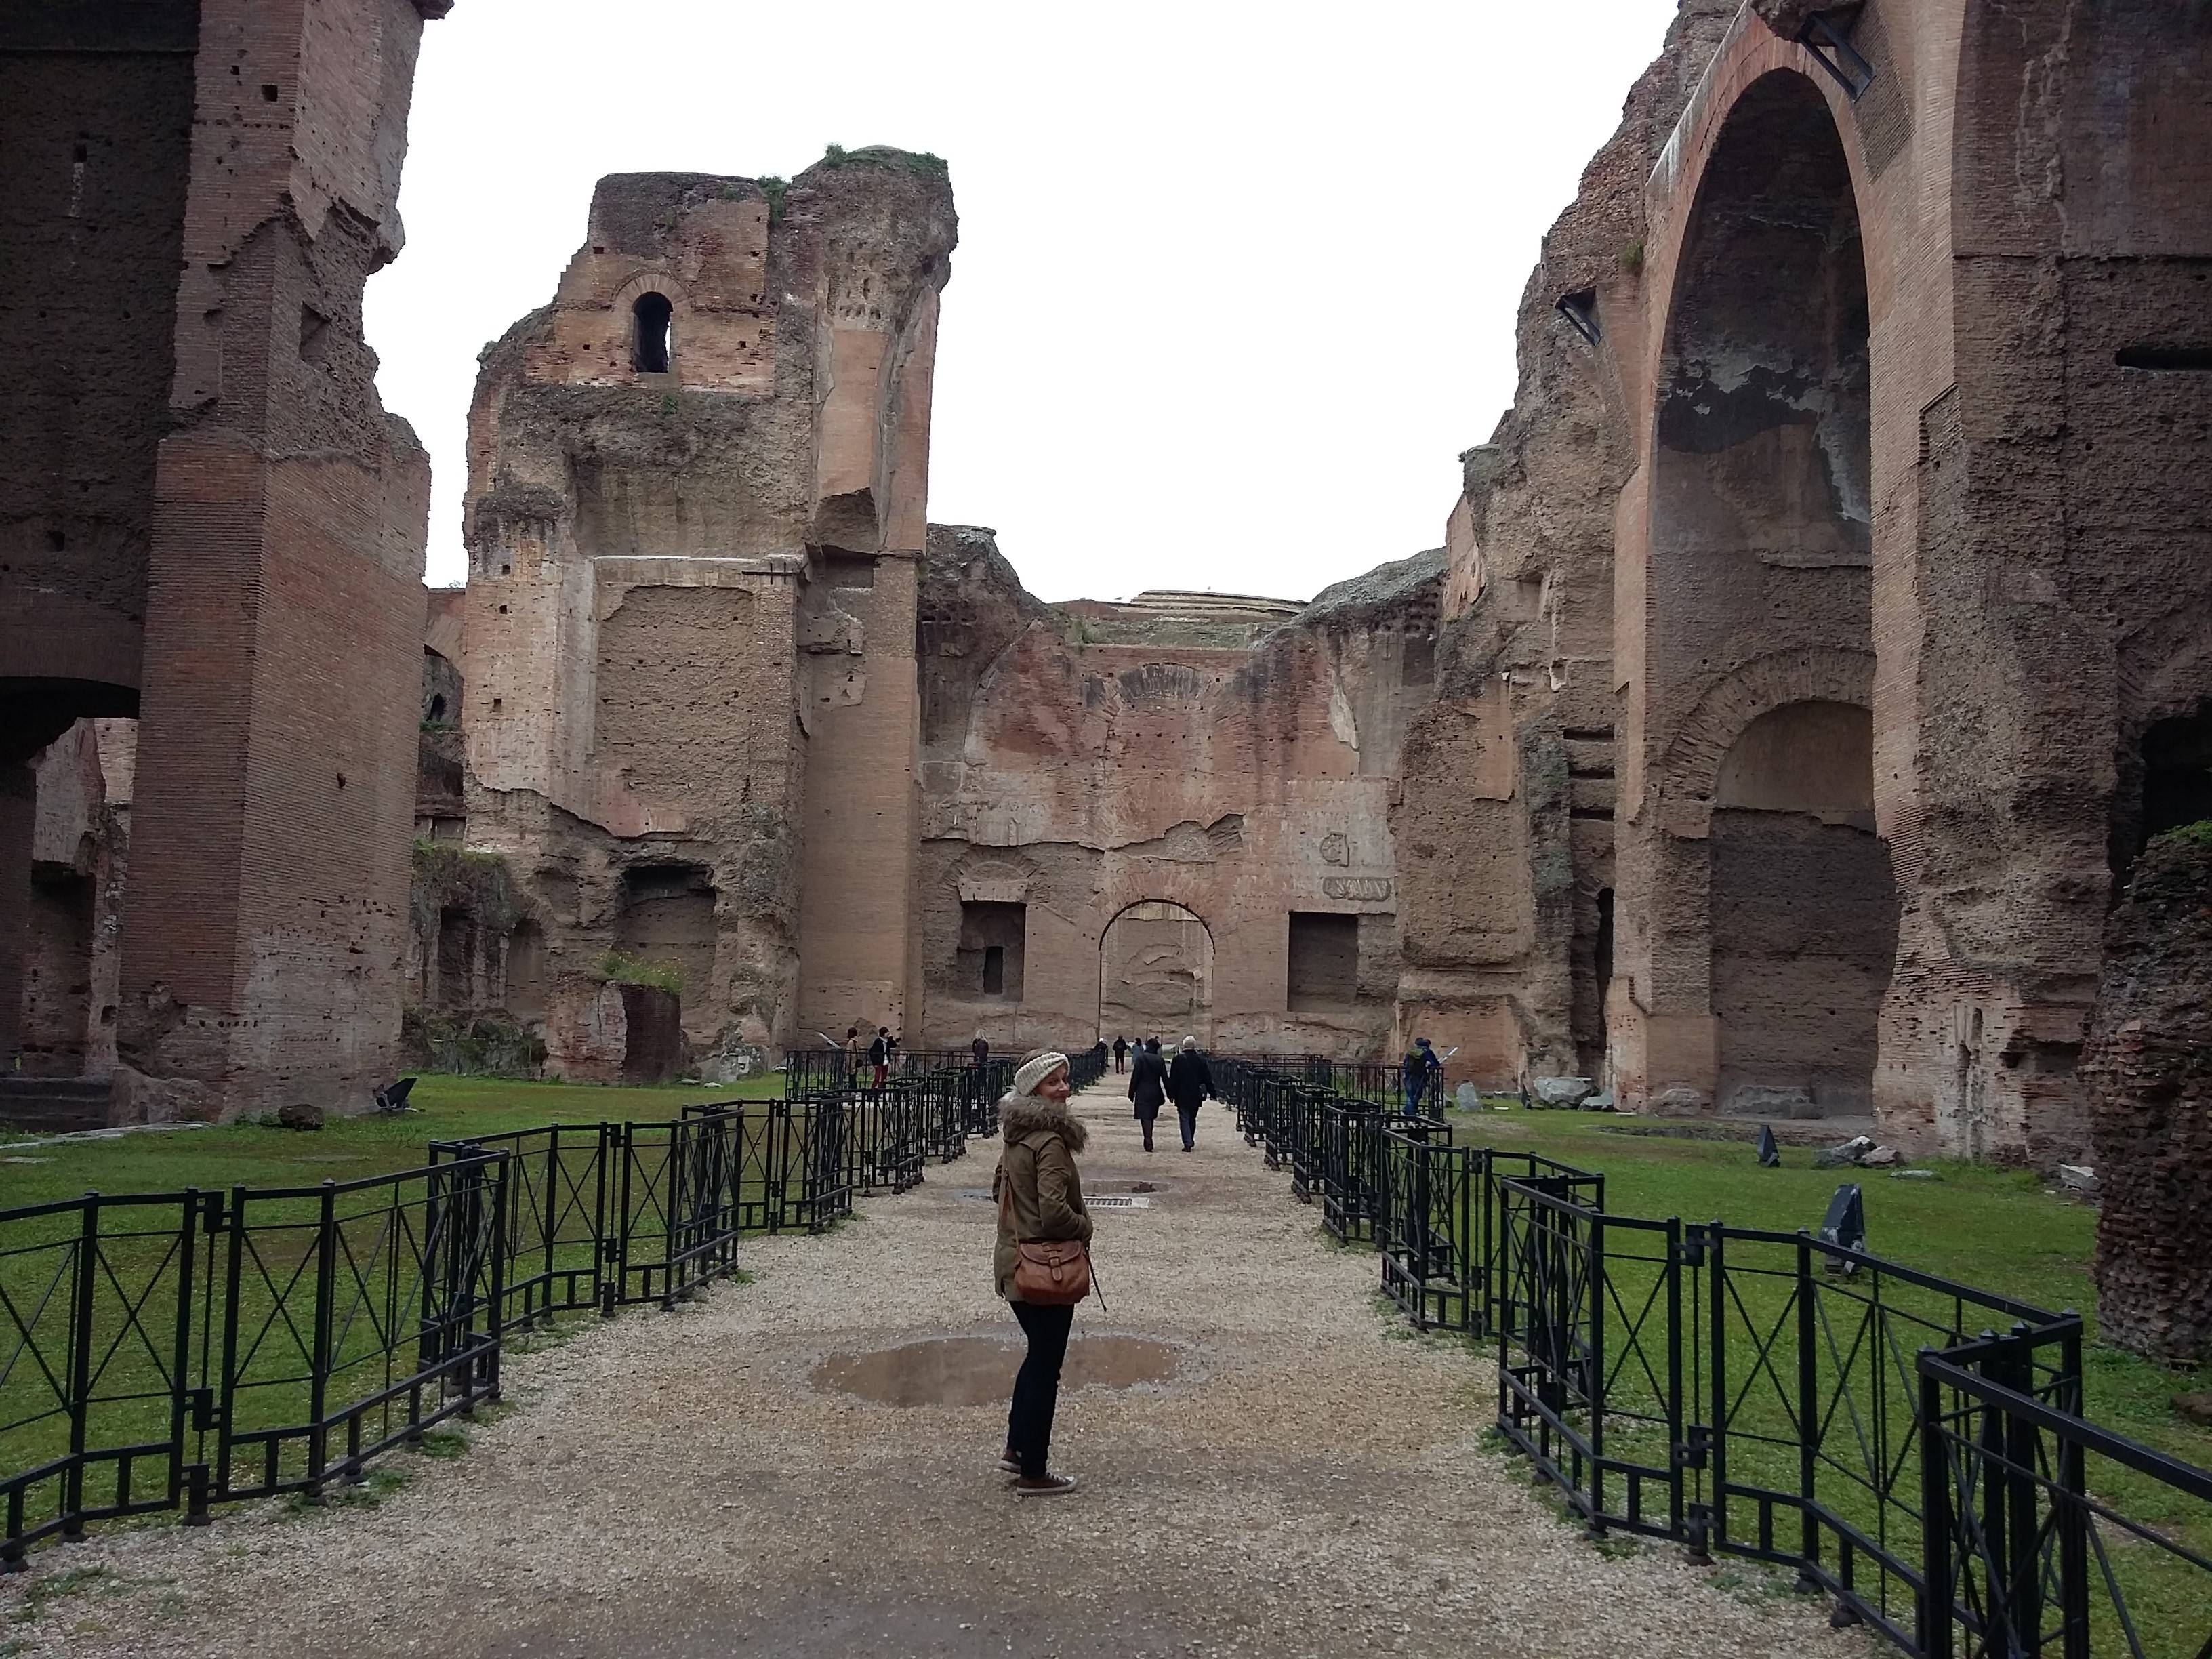 Photo 1: Les thermes de Caracalla, le gigantisme romain